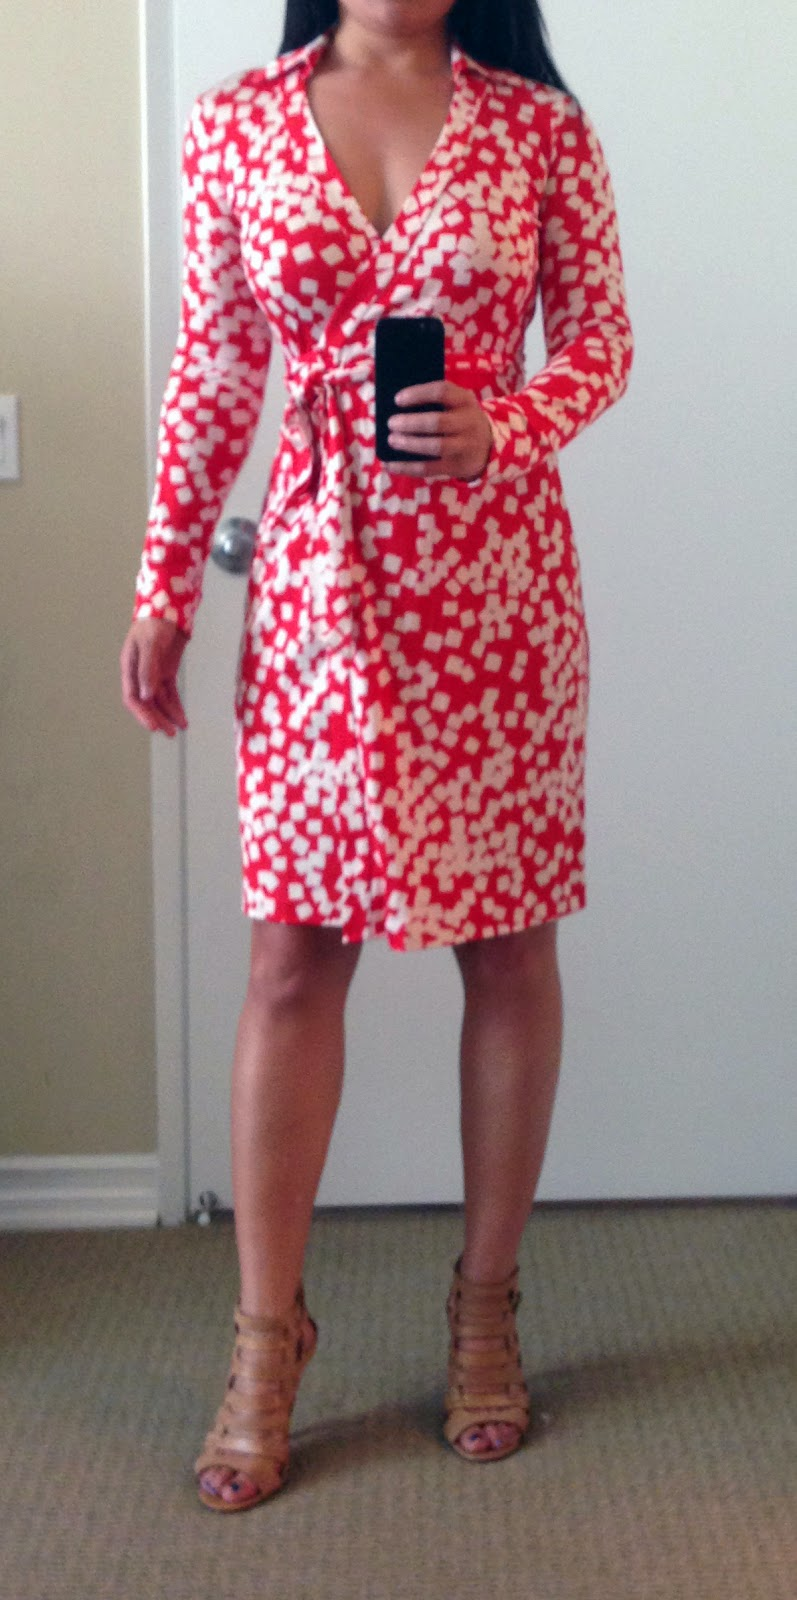 I Have Been Wanting A Versatile Red Dress And This Fits The Bill Perfectly